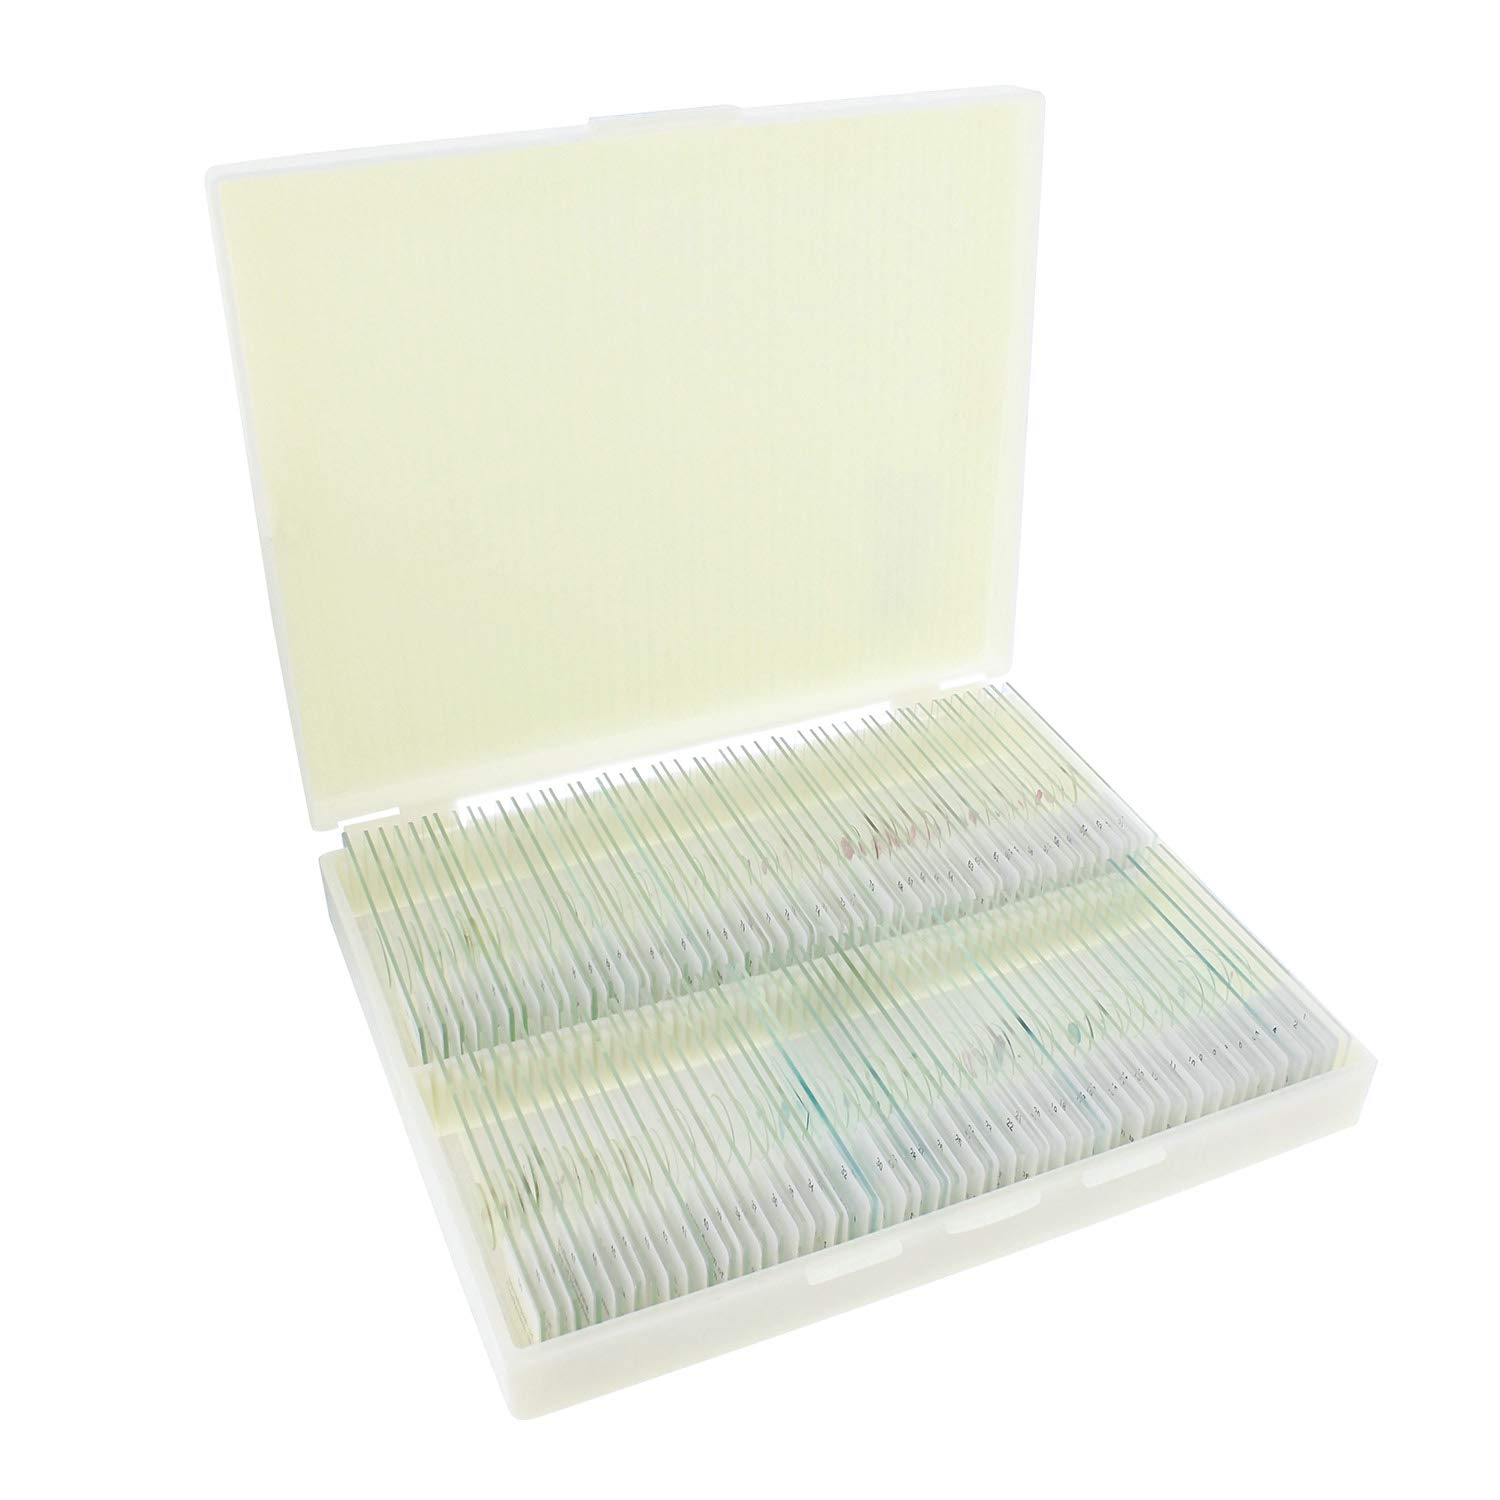 MonMed Prepared Microscope Slides 100 Pc Plant and Animal Microscope Sample Kit with Wooden Microscope Slide Box